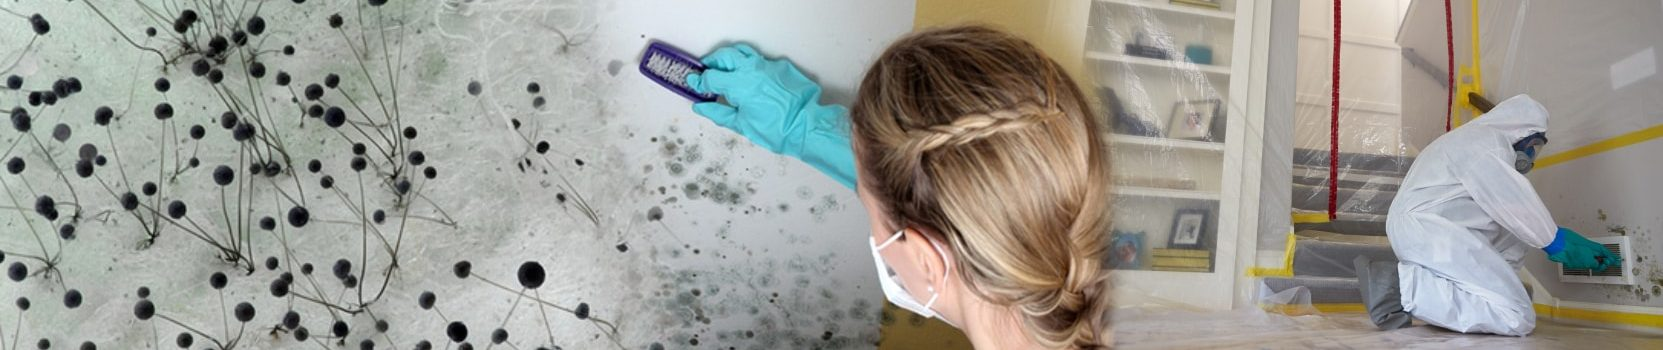 mold-remediation-smfireandwater-restoration-denver